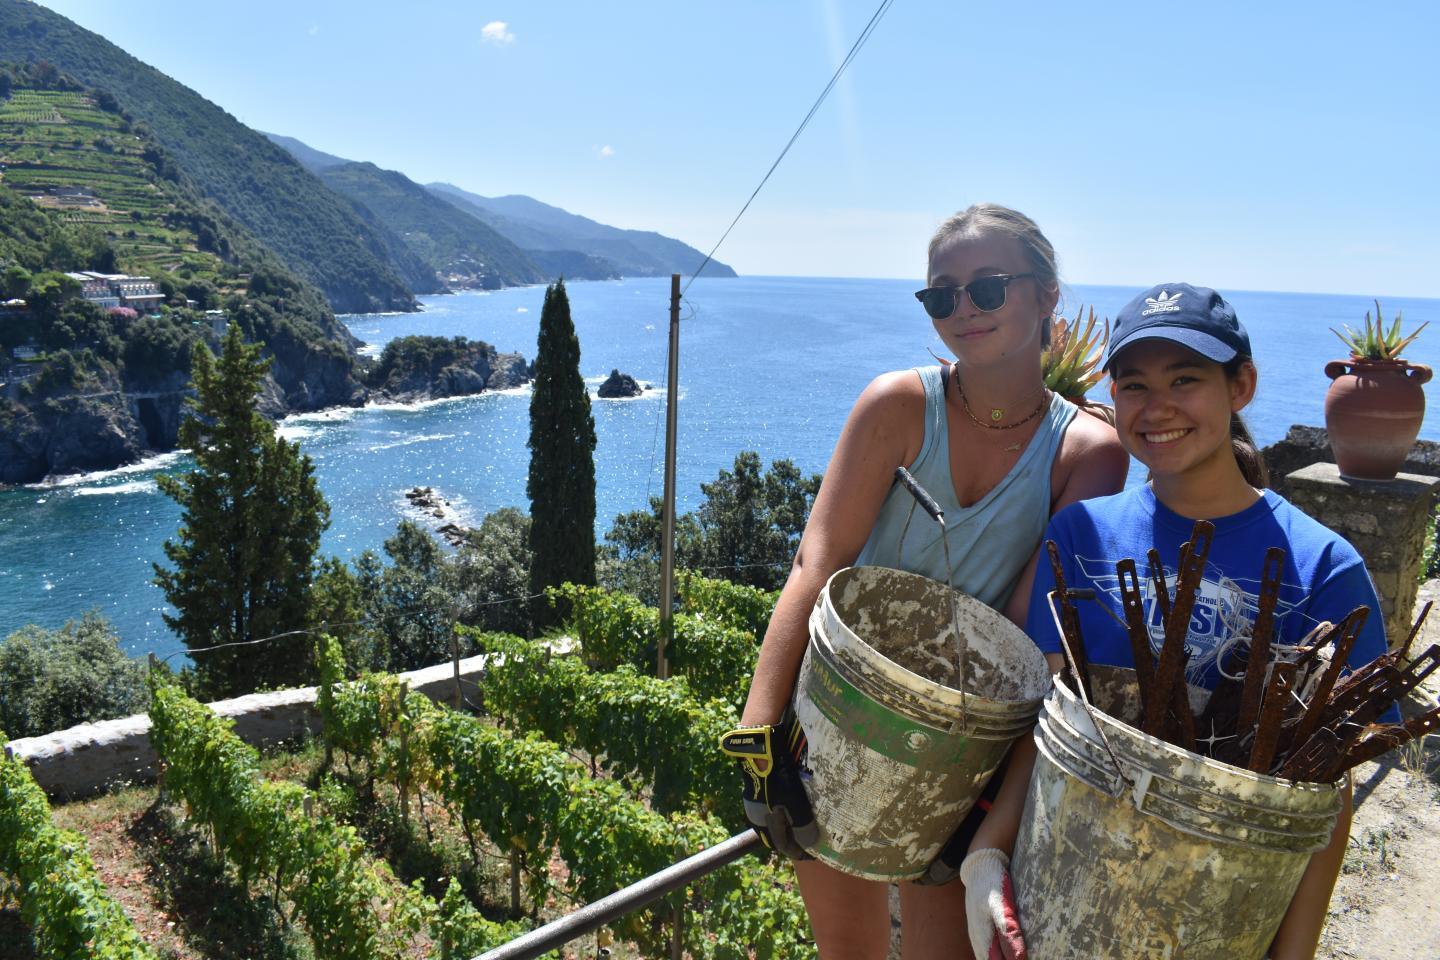 High school students complete service on the Cinque Terre on their summer teen tour to Italy.